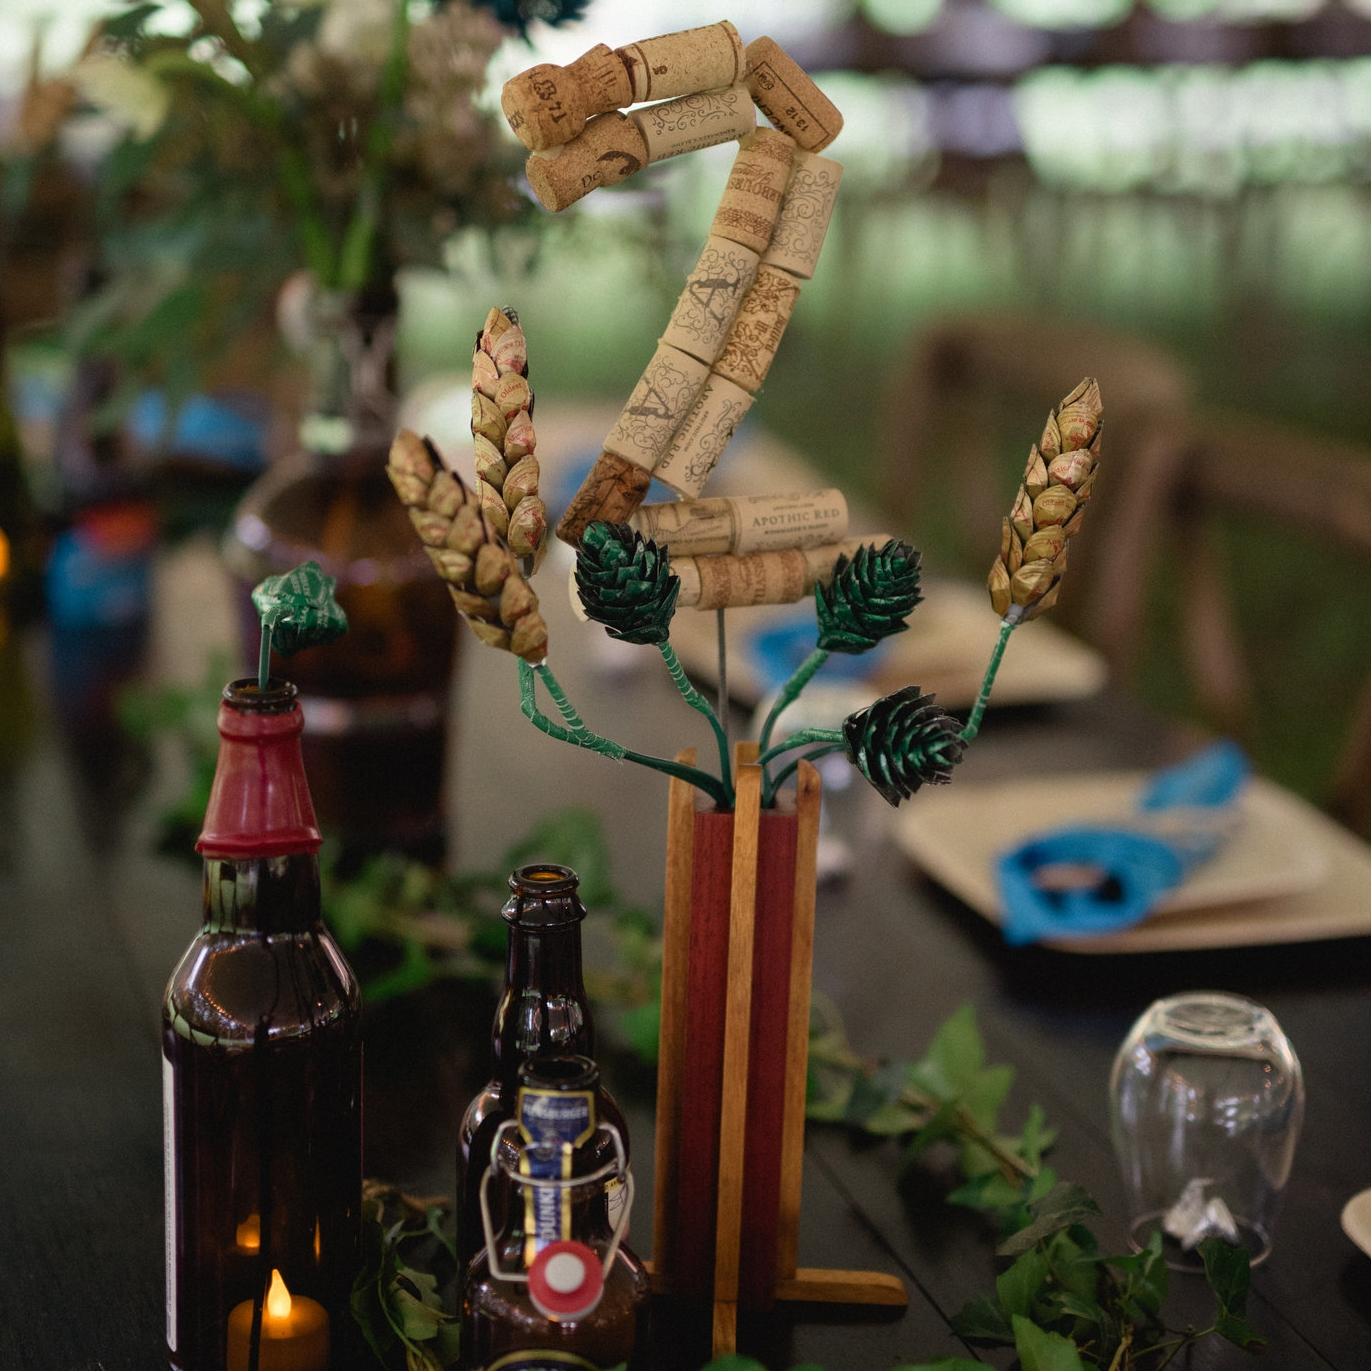 Tabletop decorations